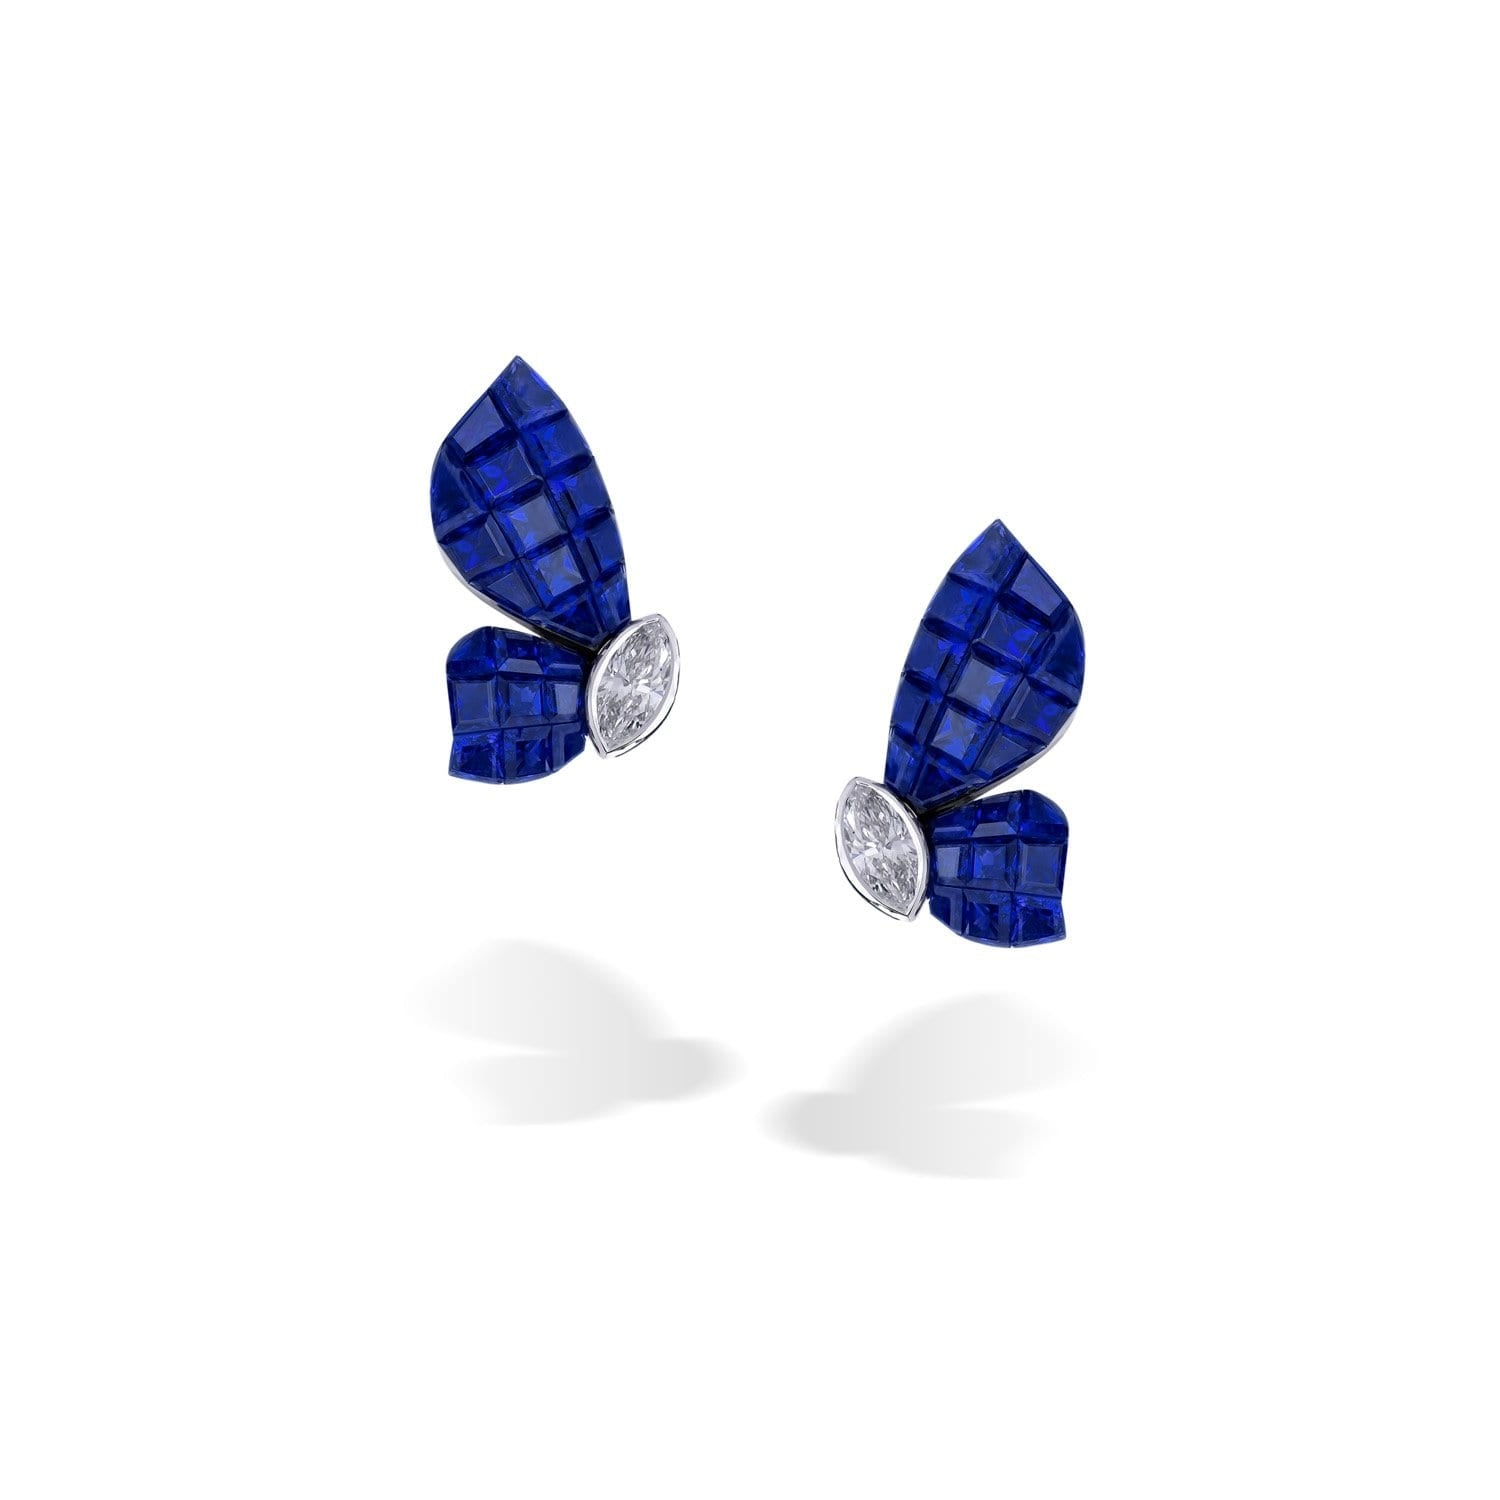 MADEMOISELLE B., PETIT Earrings - STENZHORN JEWELLERY